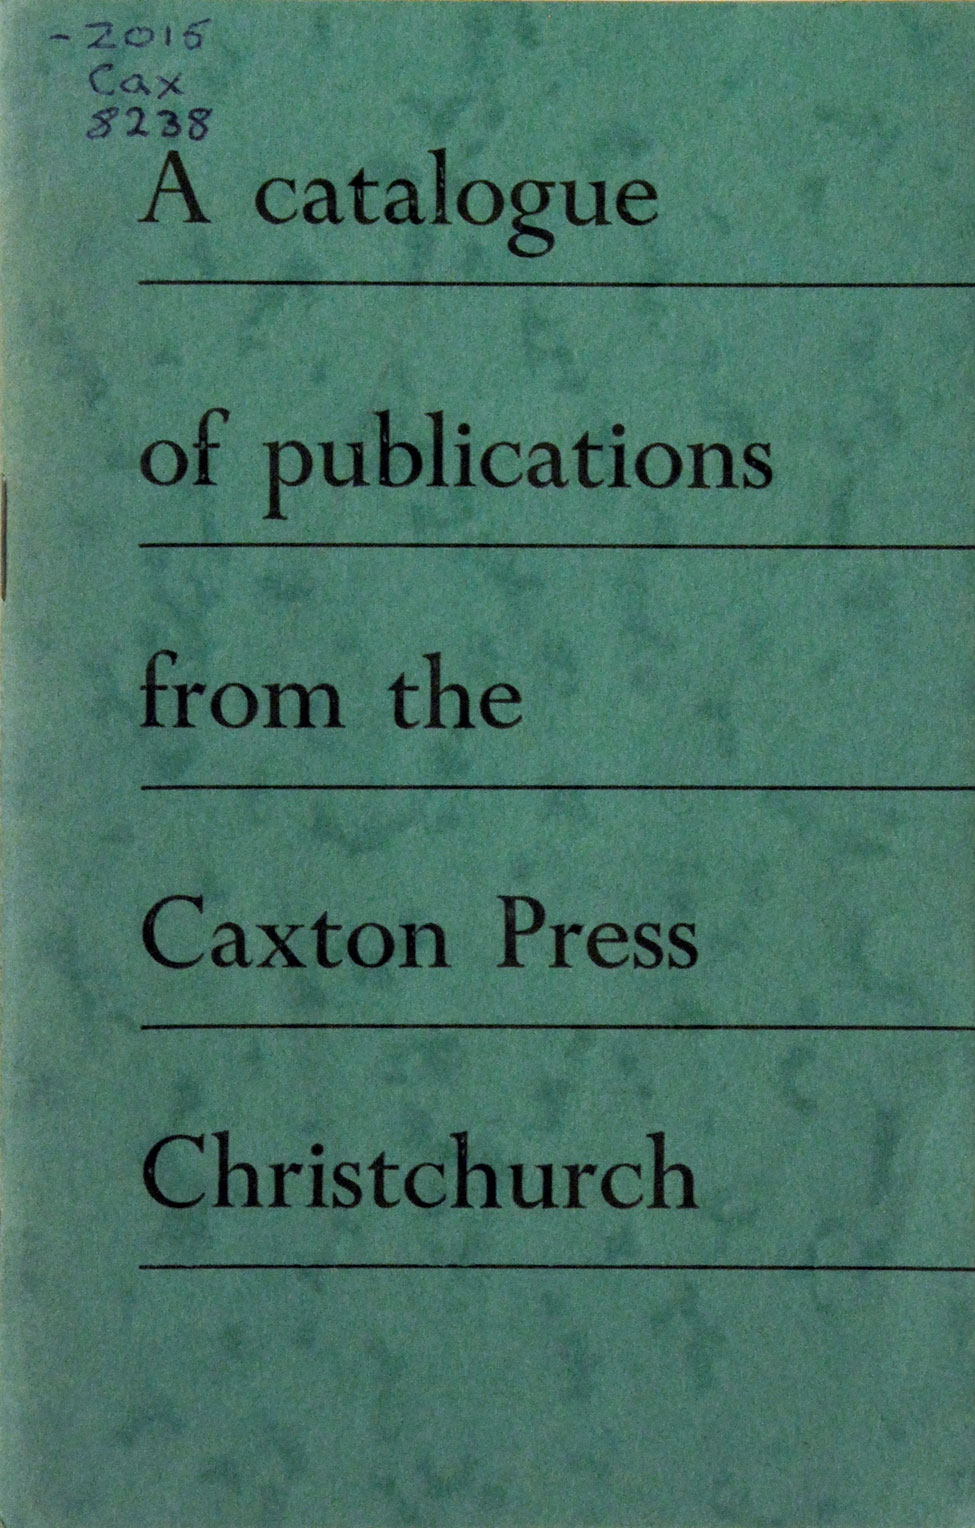 A Catalogue of Publications … up to February 1941. <i>Christchurch: The Caxton Press, 1941.</i>